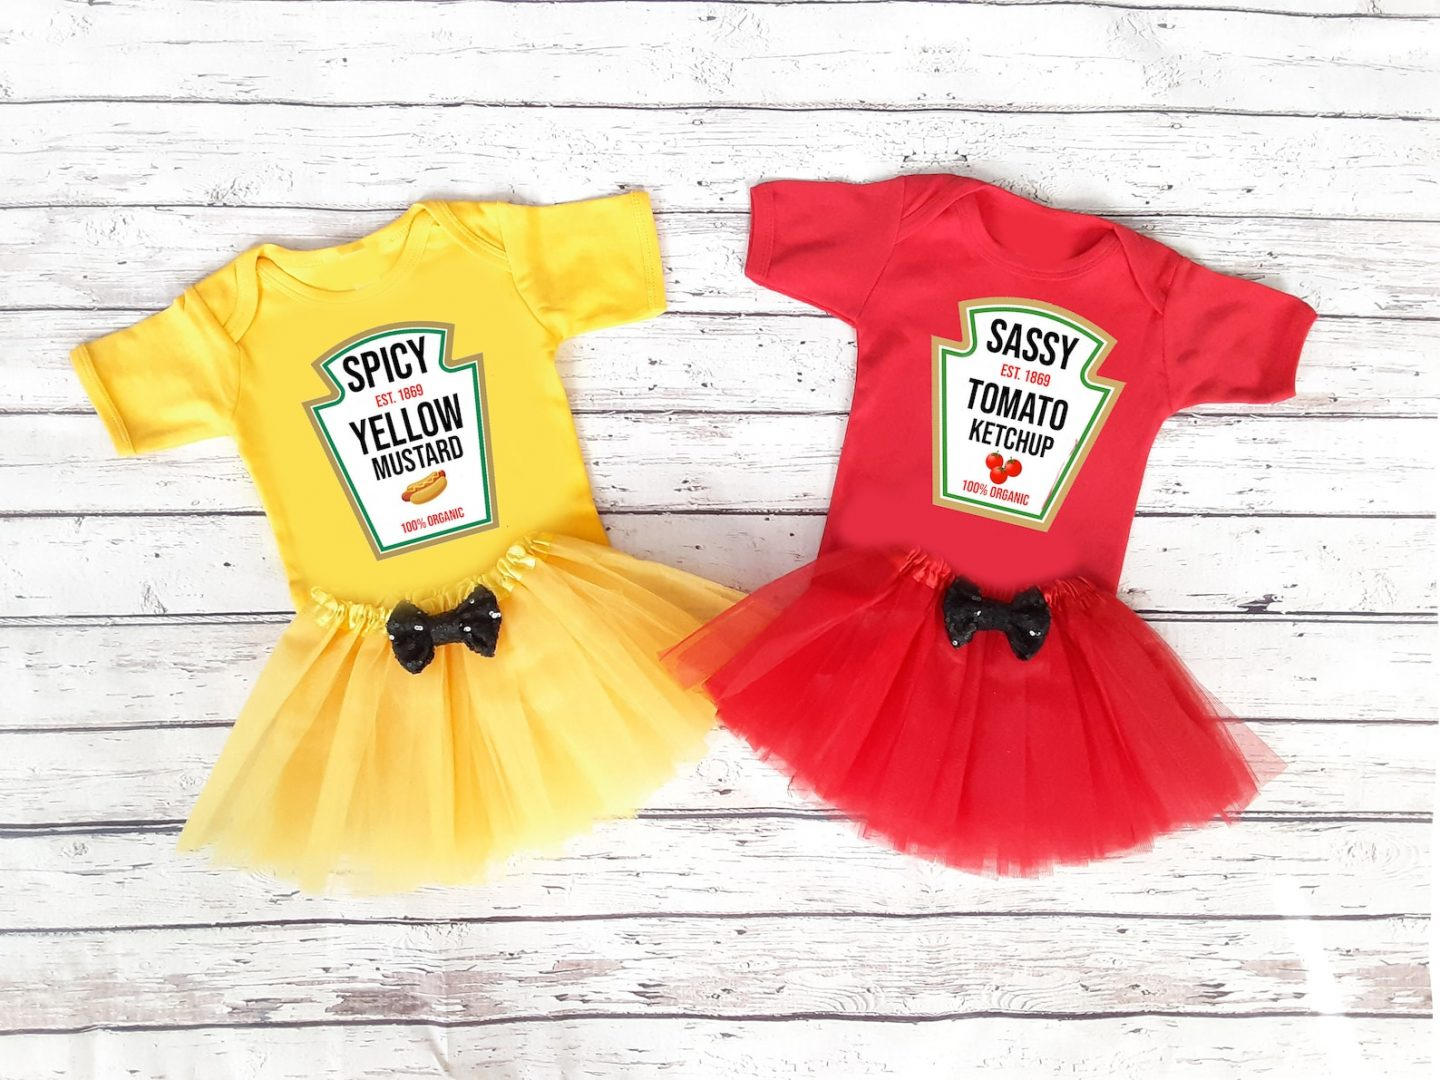 Ketchup and mustard Halloween costume for kids